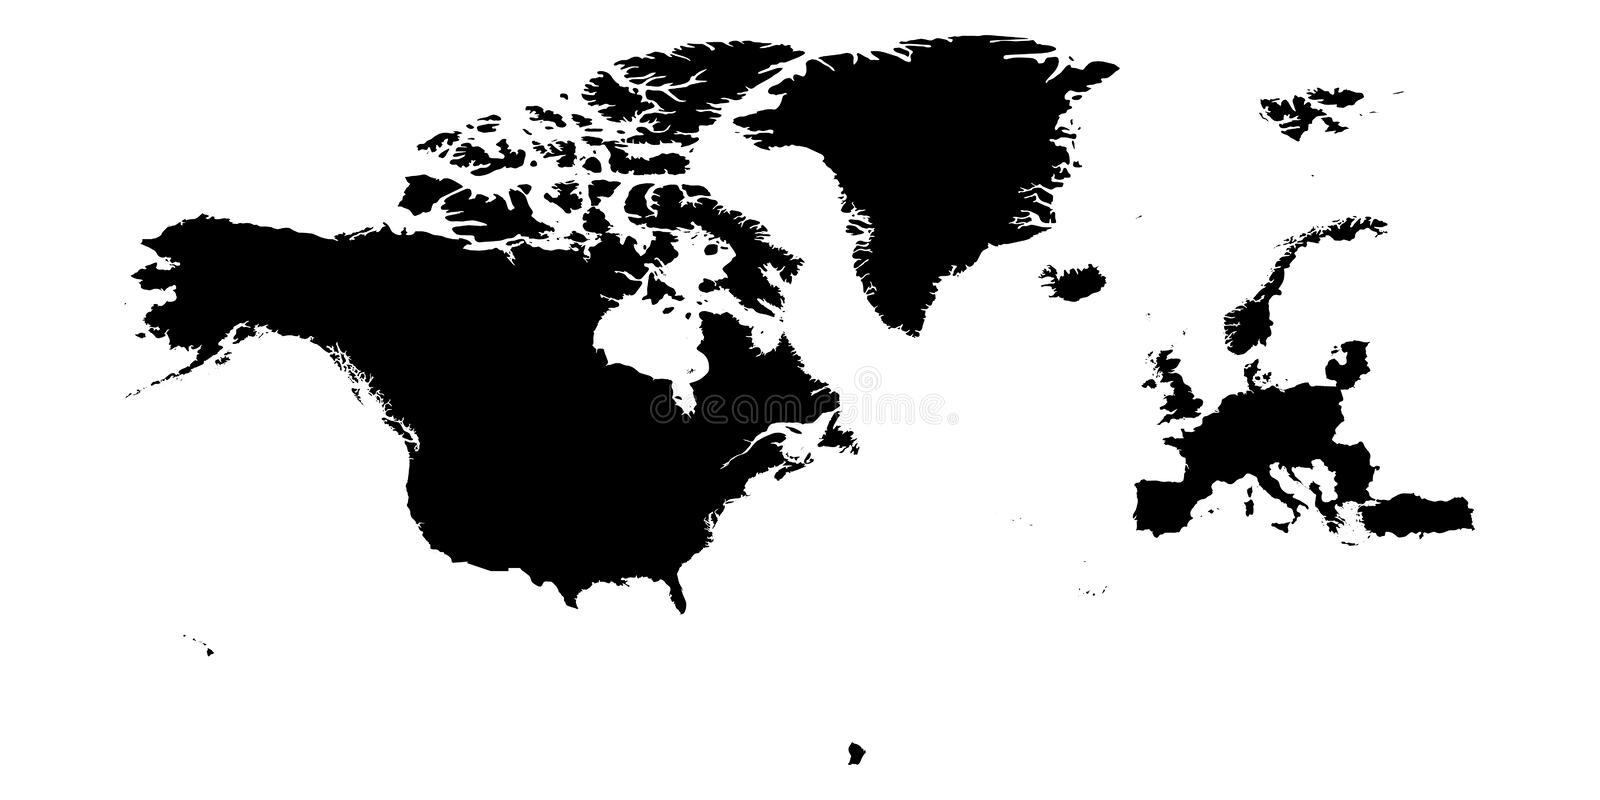 North Atlantic Treaty Organization, NATO, member countries silhouette map.  stock illustration